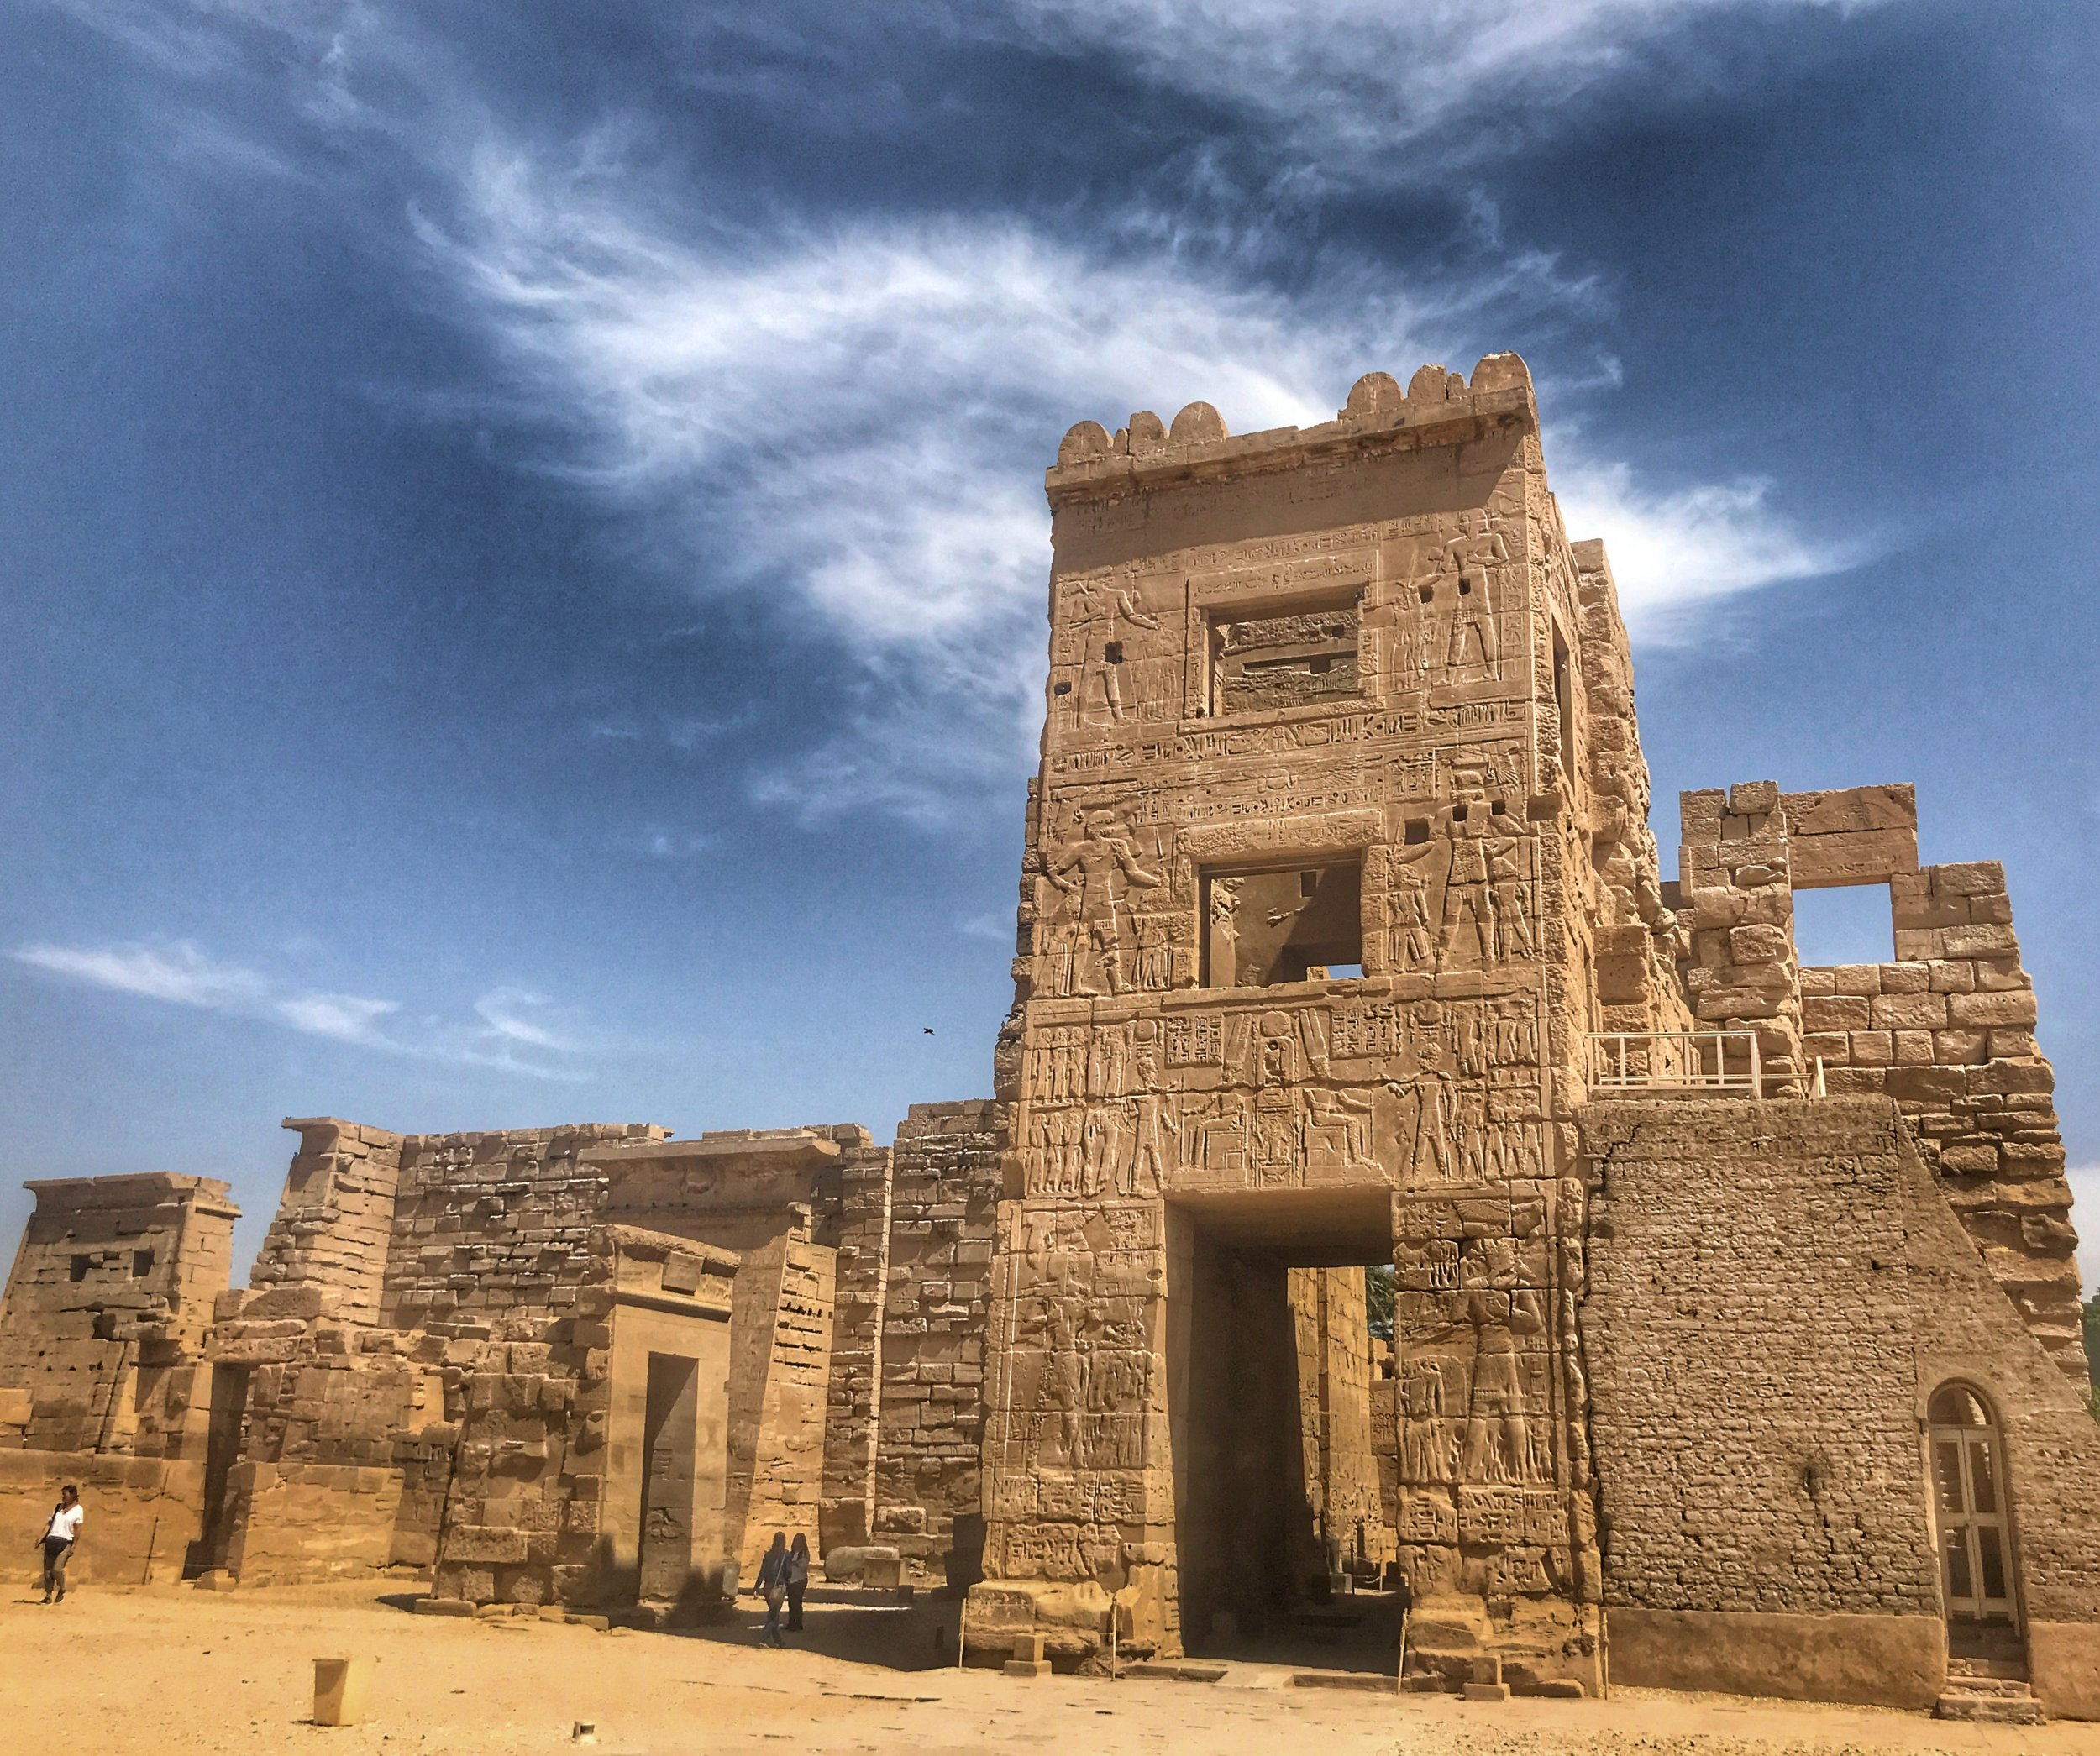 When in Luxor, be sure to visit Medinet Habu, an often-overlooked temple